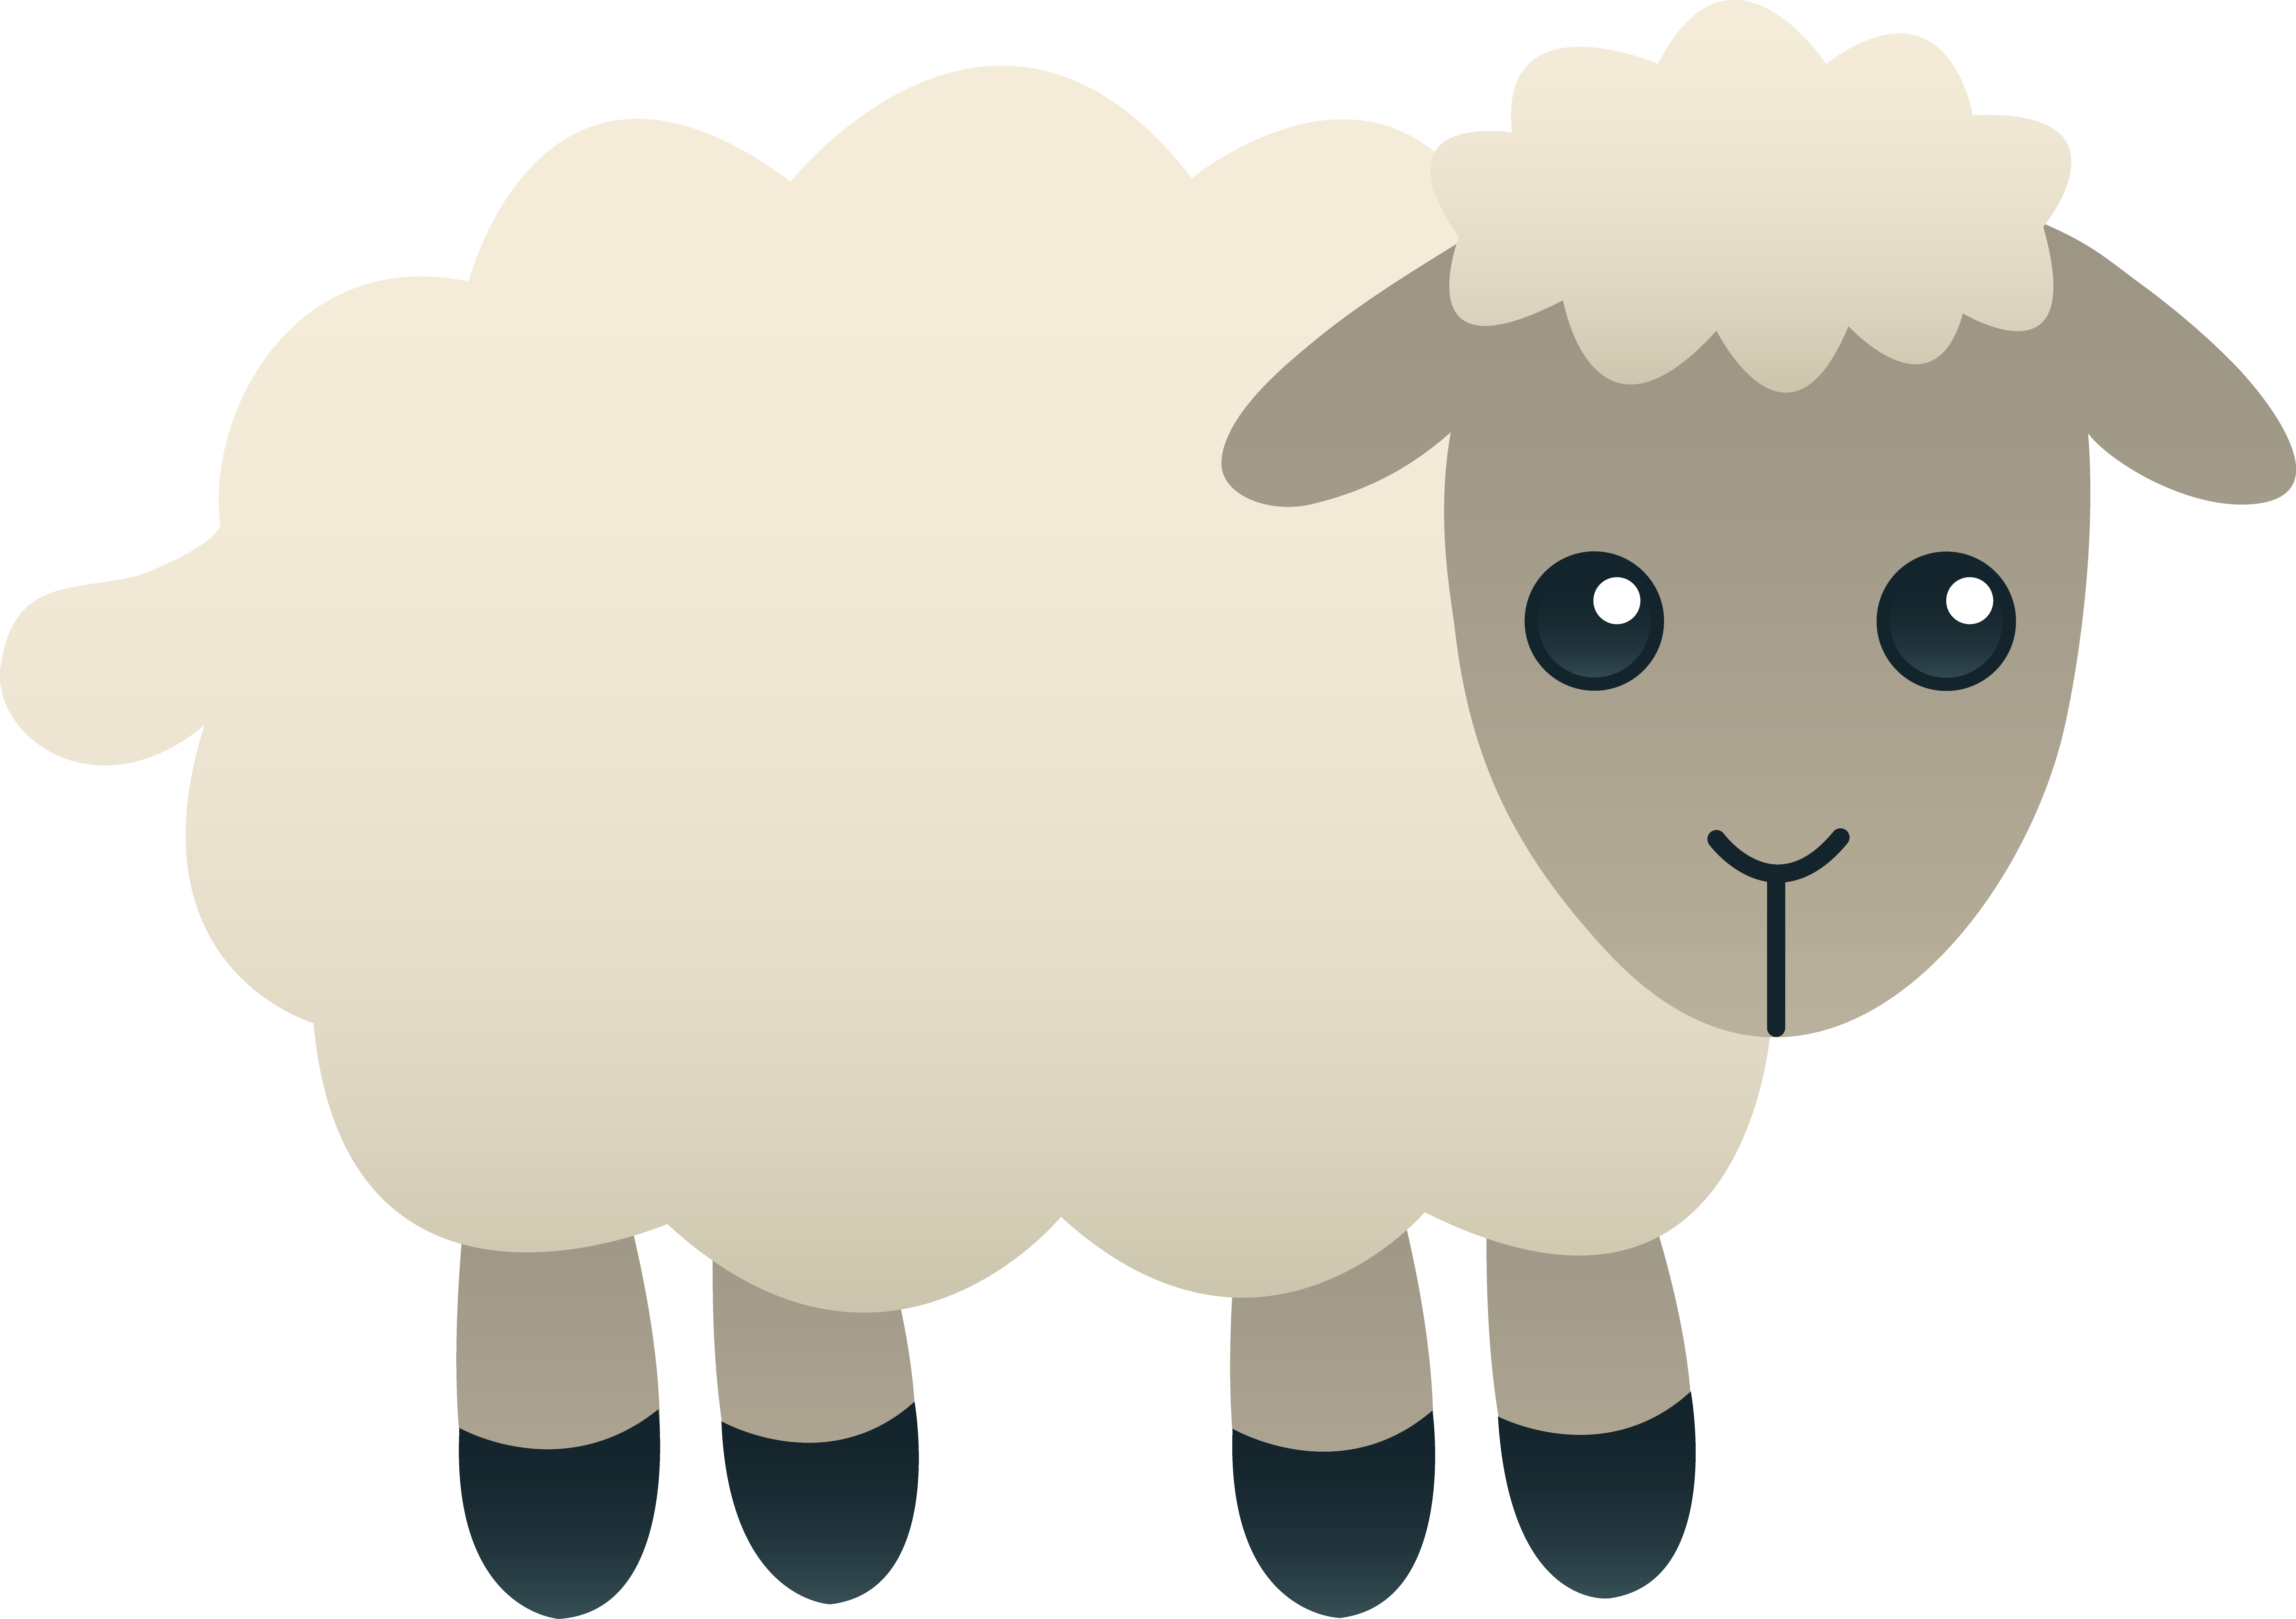 Lamb clipart transparent background. Animated free on dumielauxepices